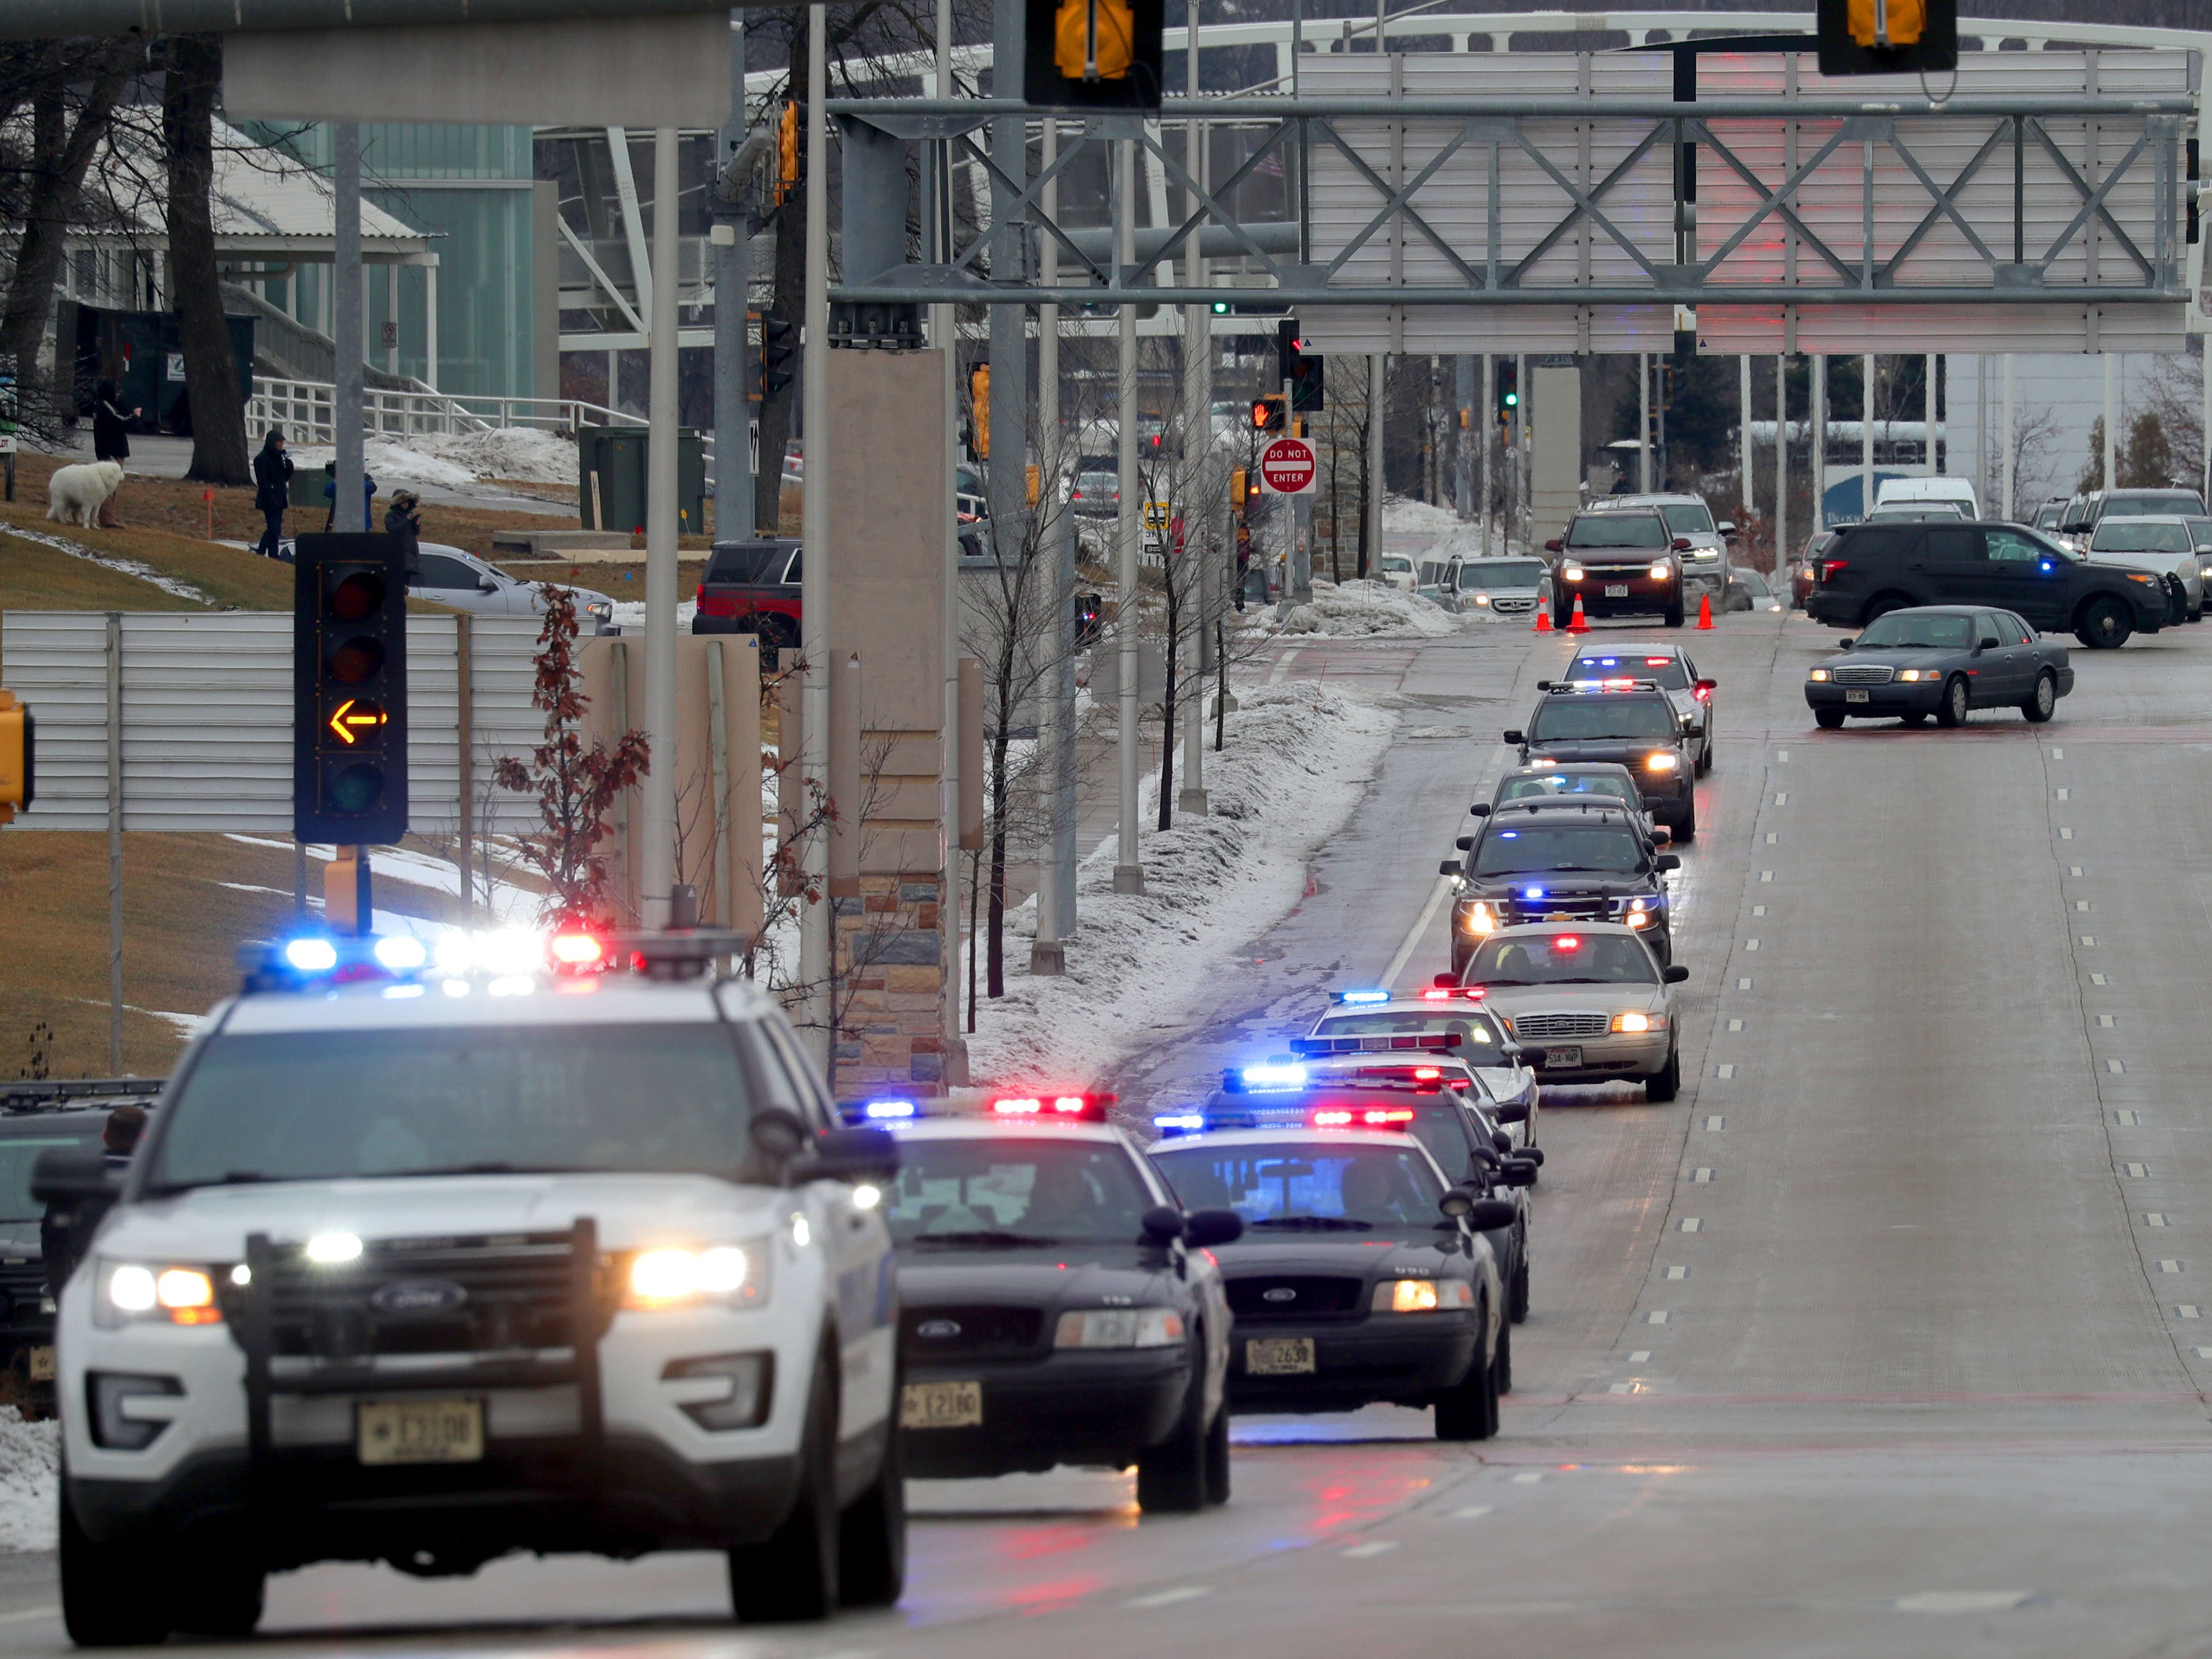 A procession of police vehicles leaves Froedtert Hospital in Wauwatosa on Wednesday on its way to the Milwaukee County Medical Examiner's Office with the hearse containing the body of a fallen Milwaukee police officer.